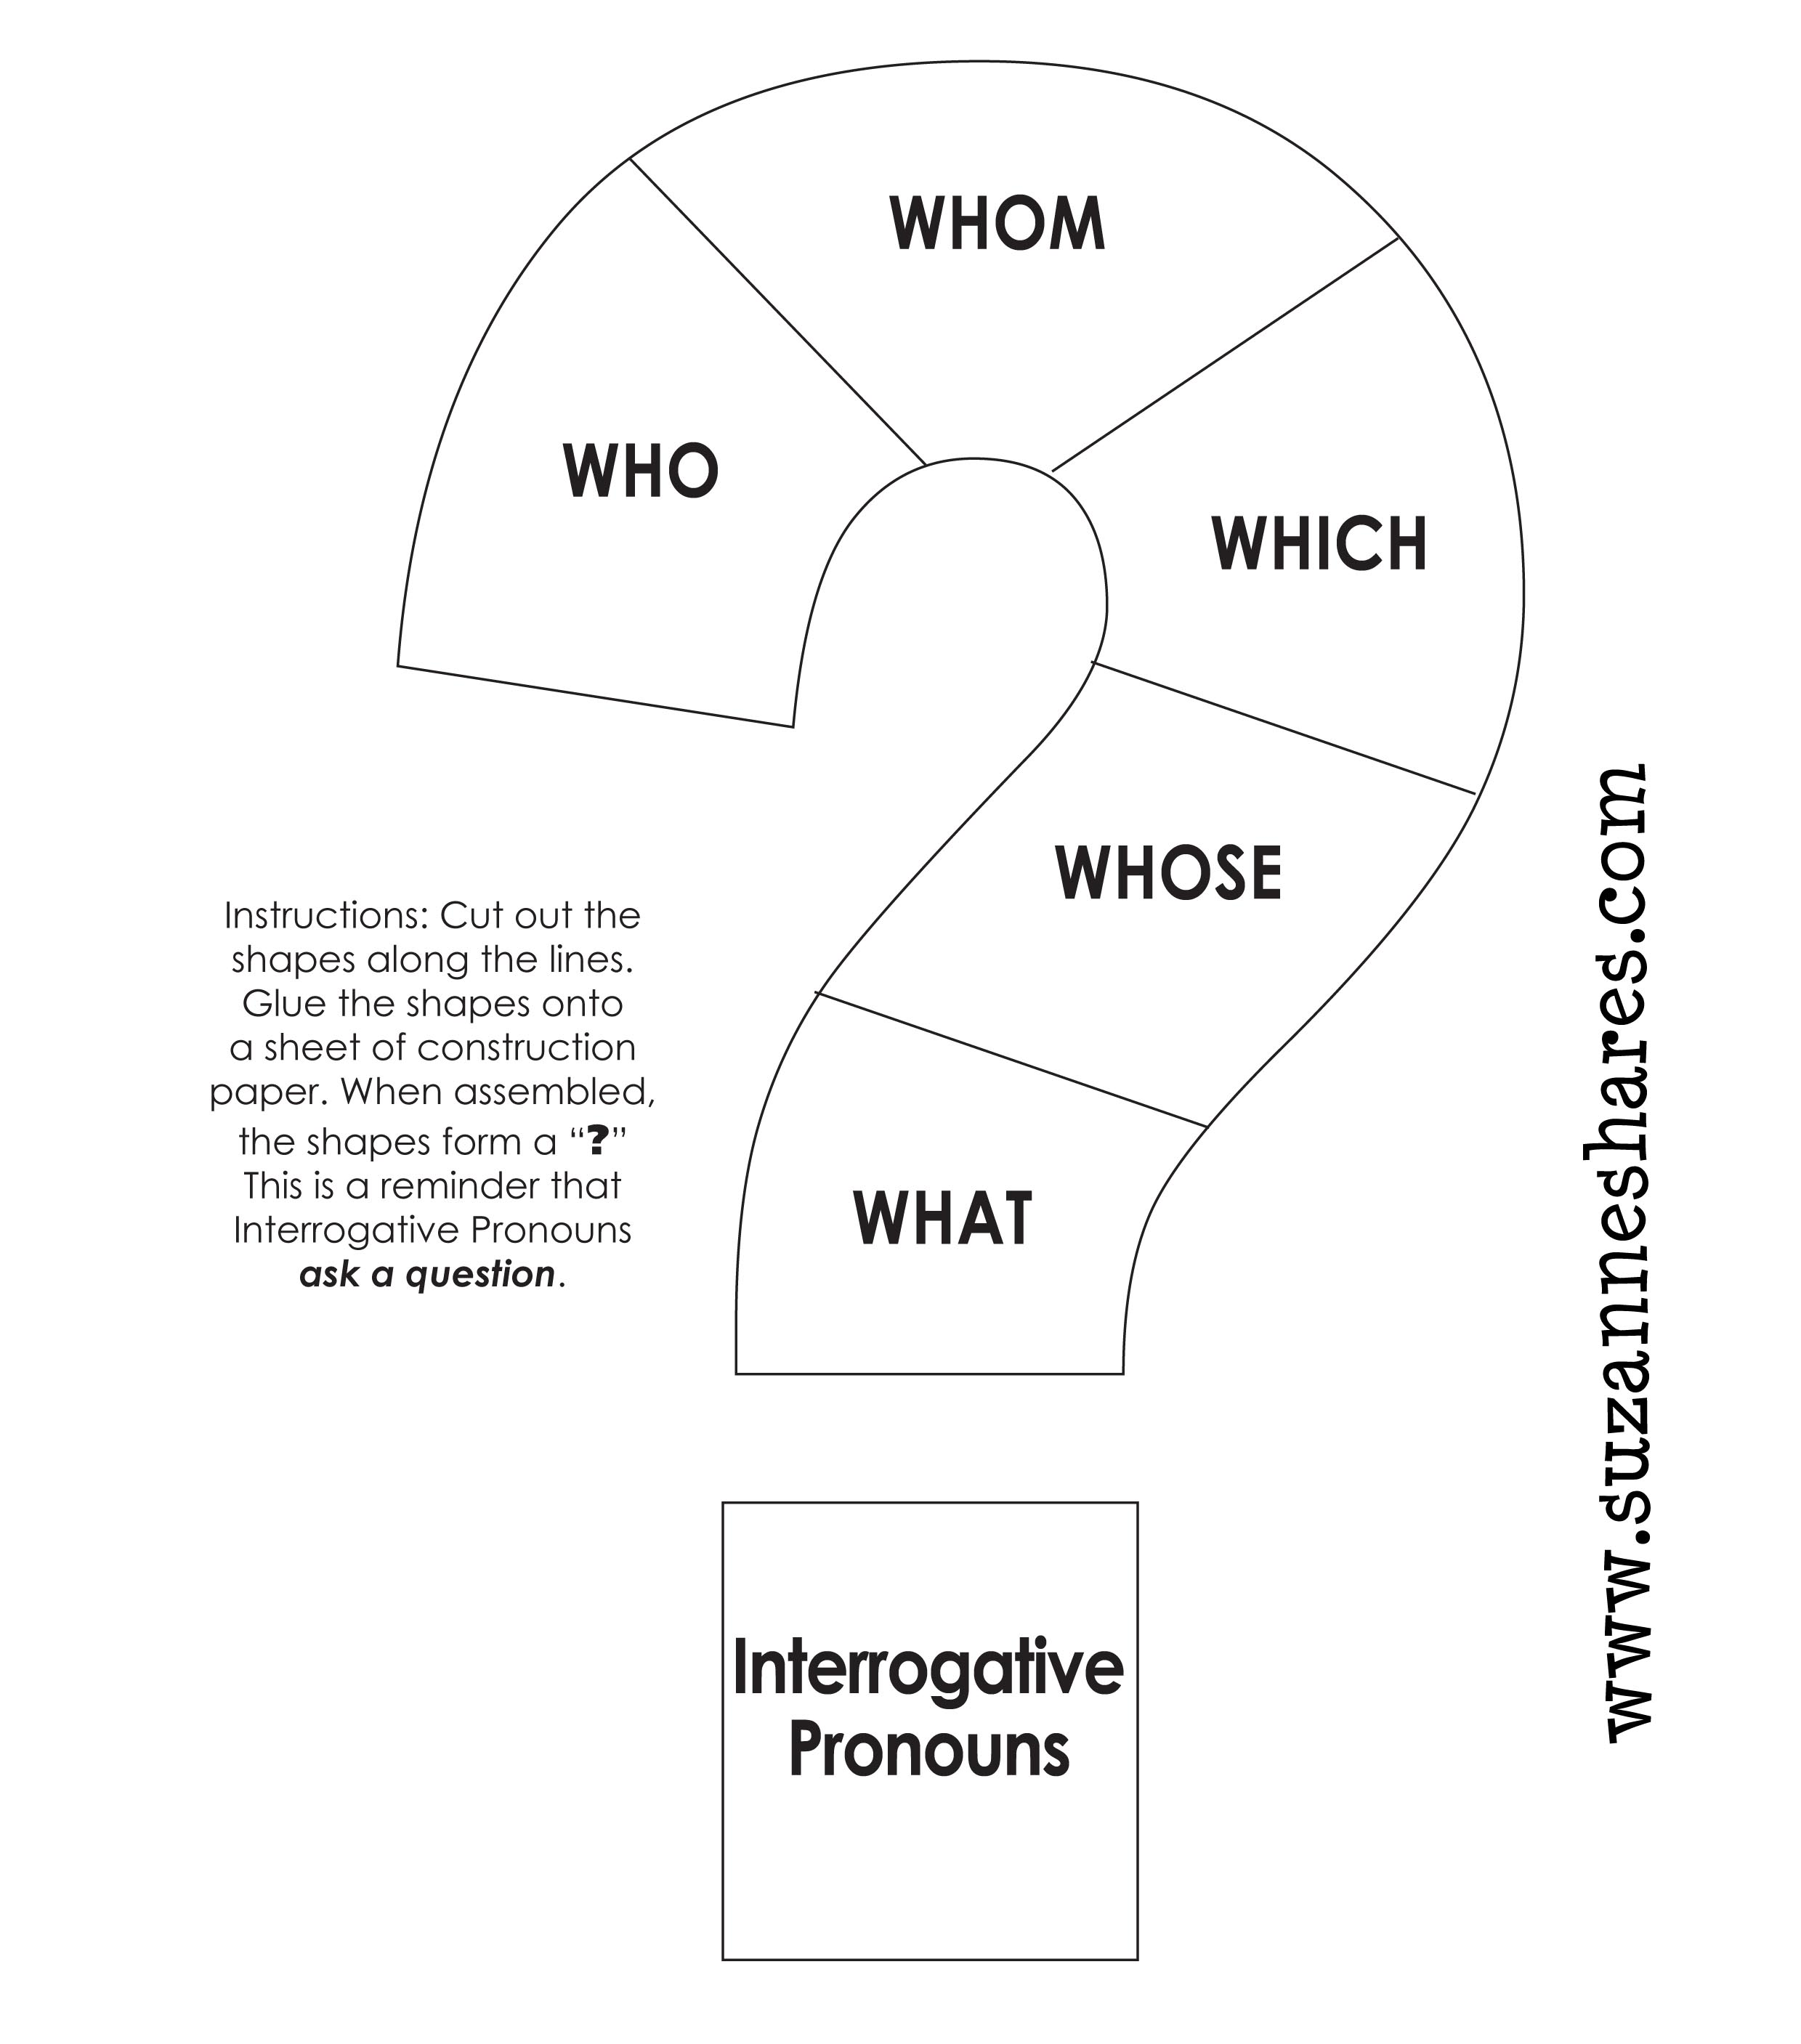 Printables Pronoun Worksheets Middle School pronoun worksheets middle school abitlikethis for both the interrogative and demonstrative pronouns